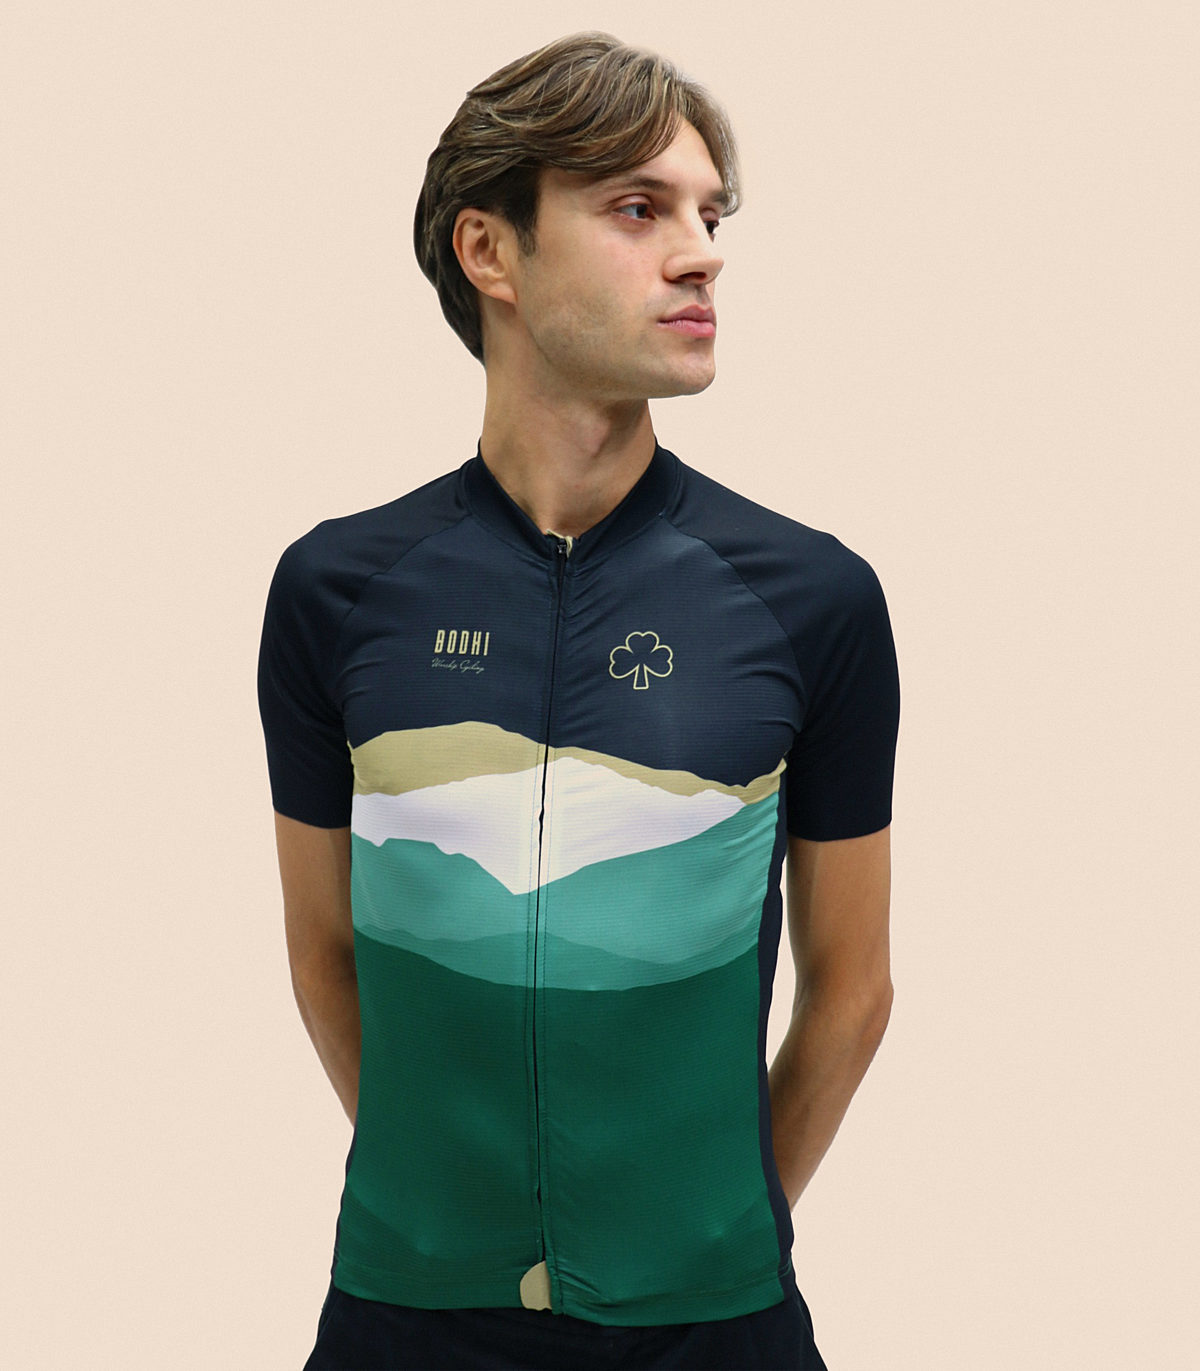 Bodhi cycling collection cotter men front copy